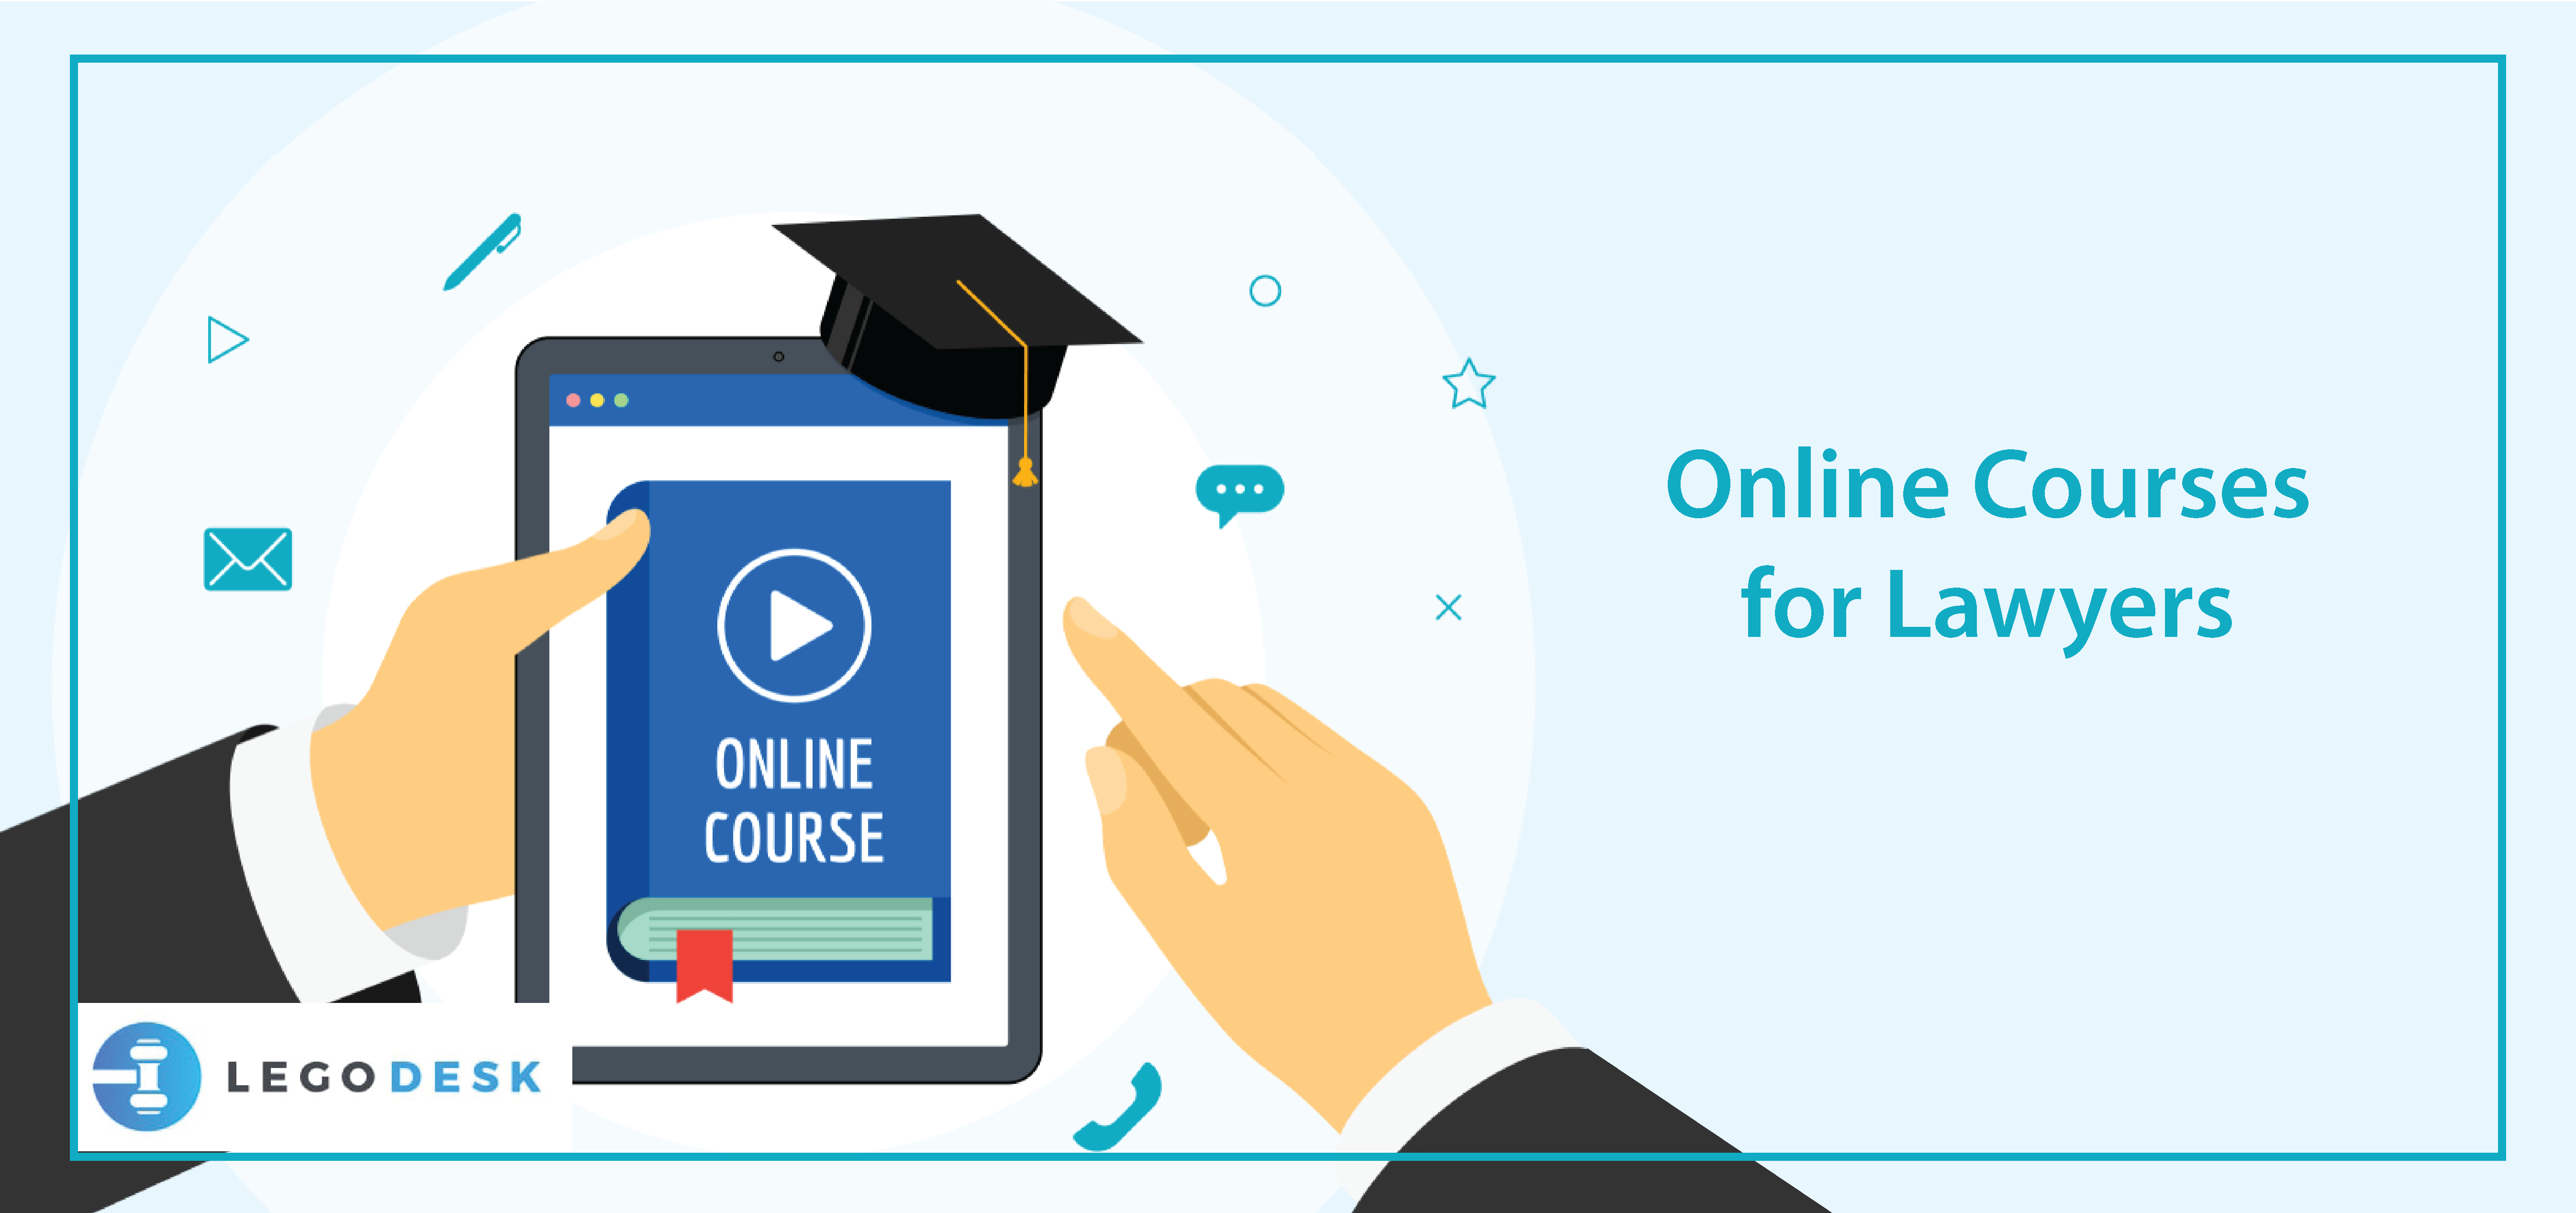 Online Courses for Lawyers and Their Benefits